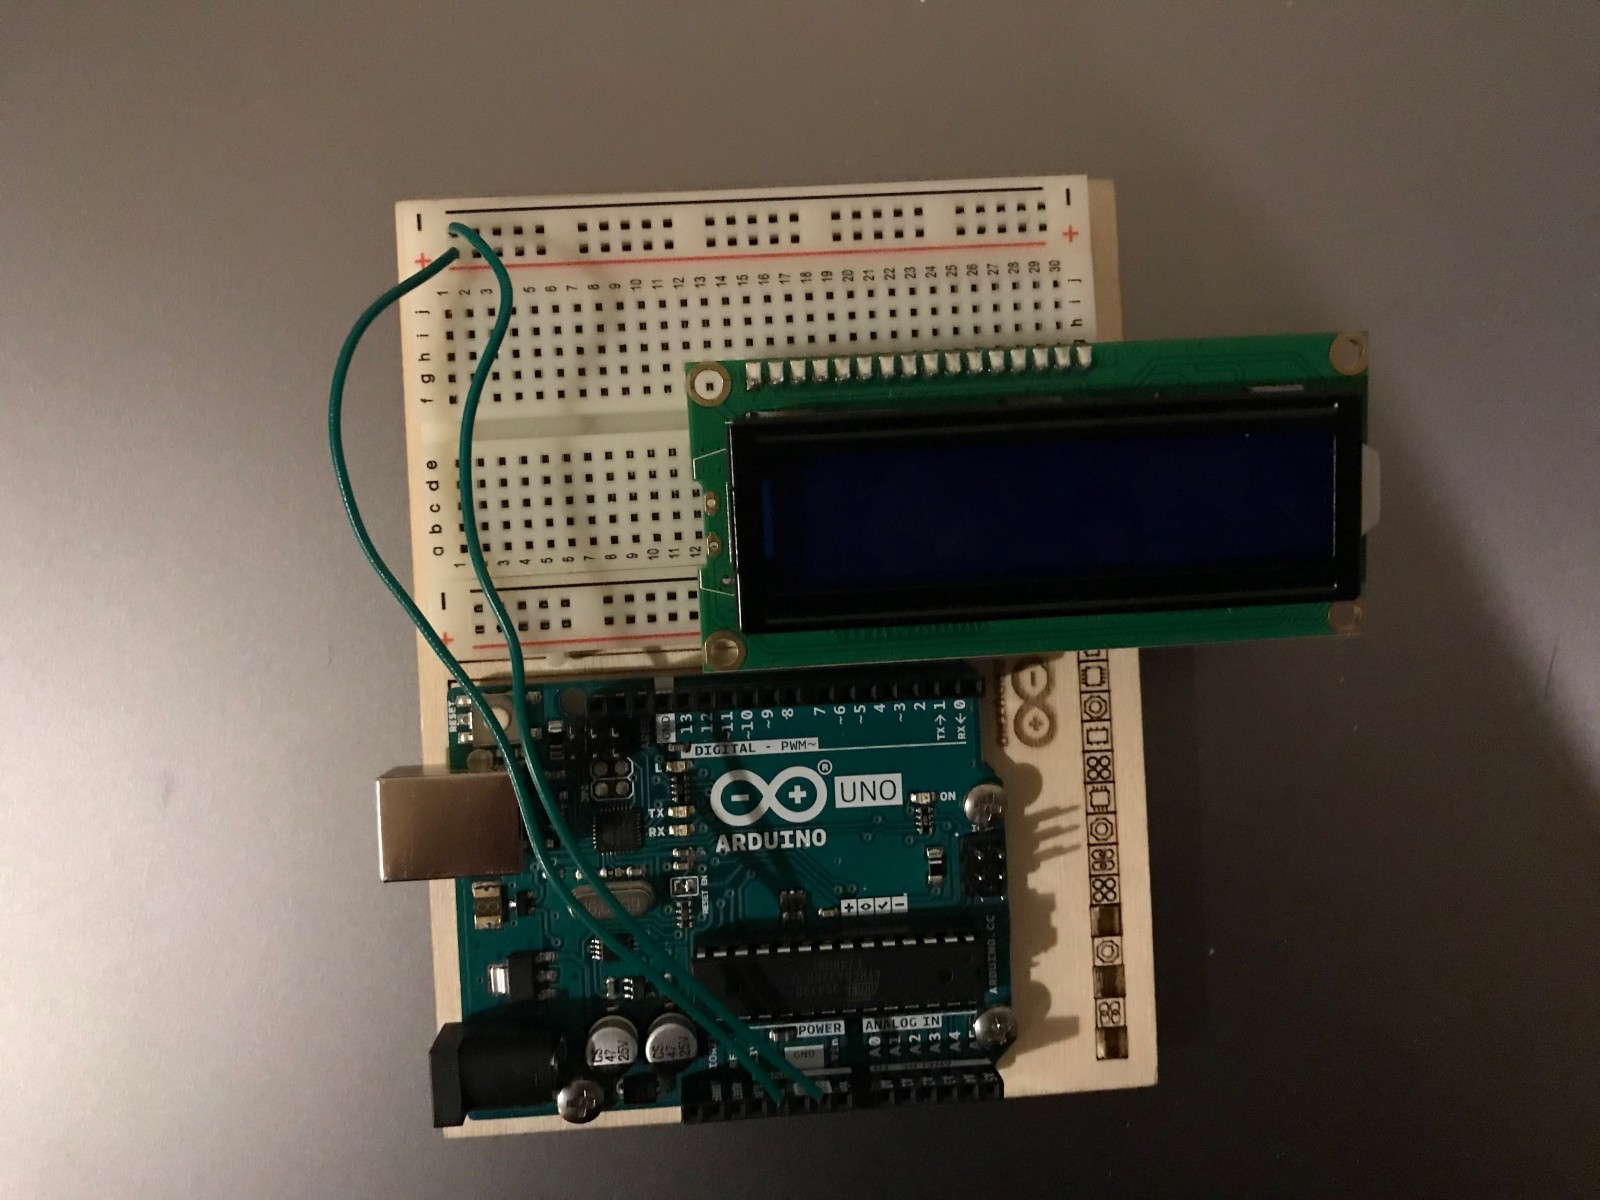 How To Make A Digital Voltmeter Using Arduino Freecodecamporg Based Circuits Projects Tutorials Electronics This Is The Basic Setup After Step 1